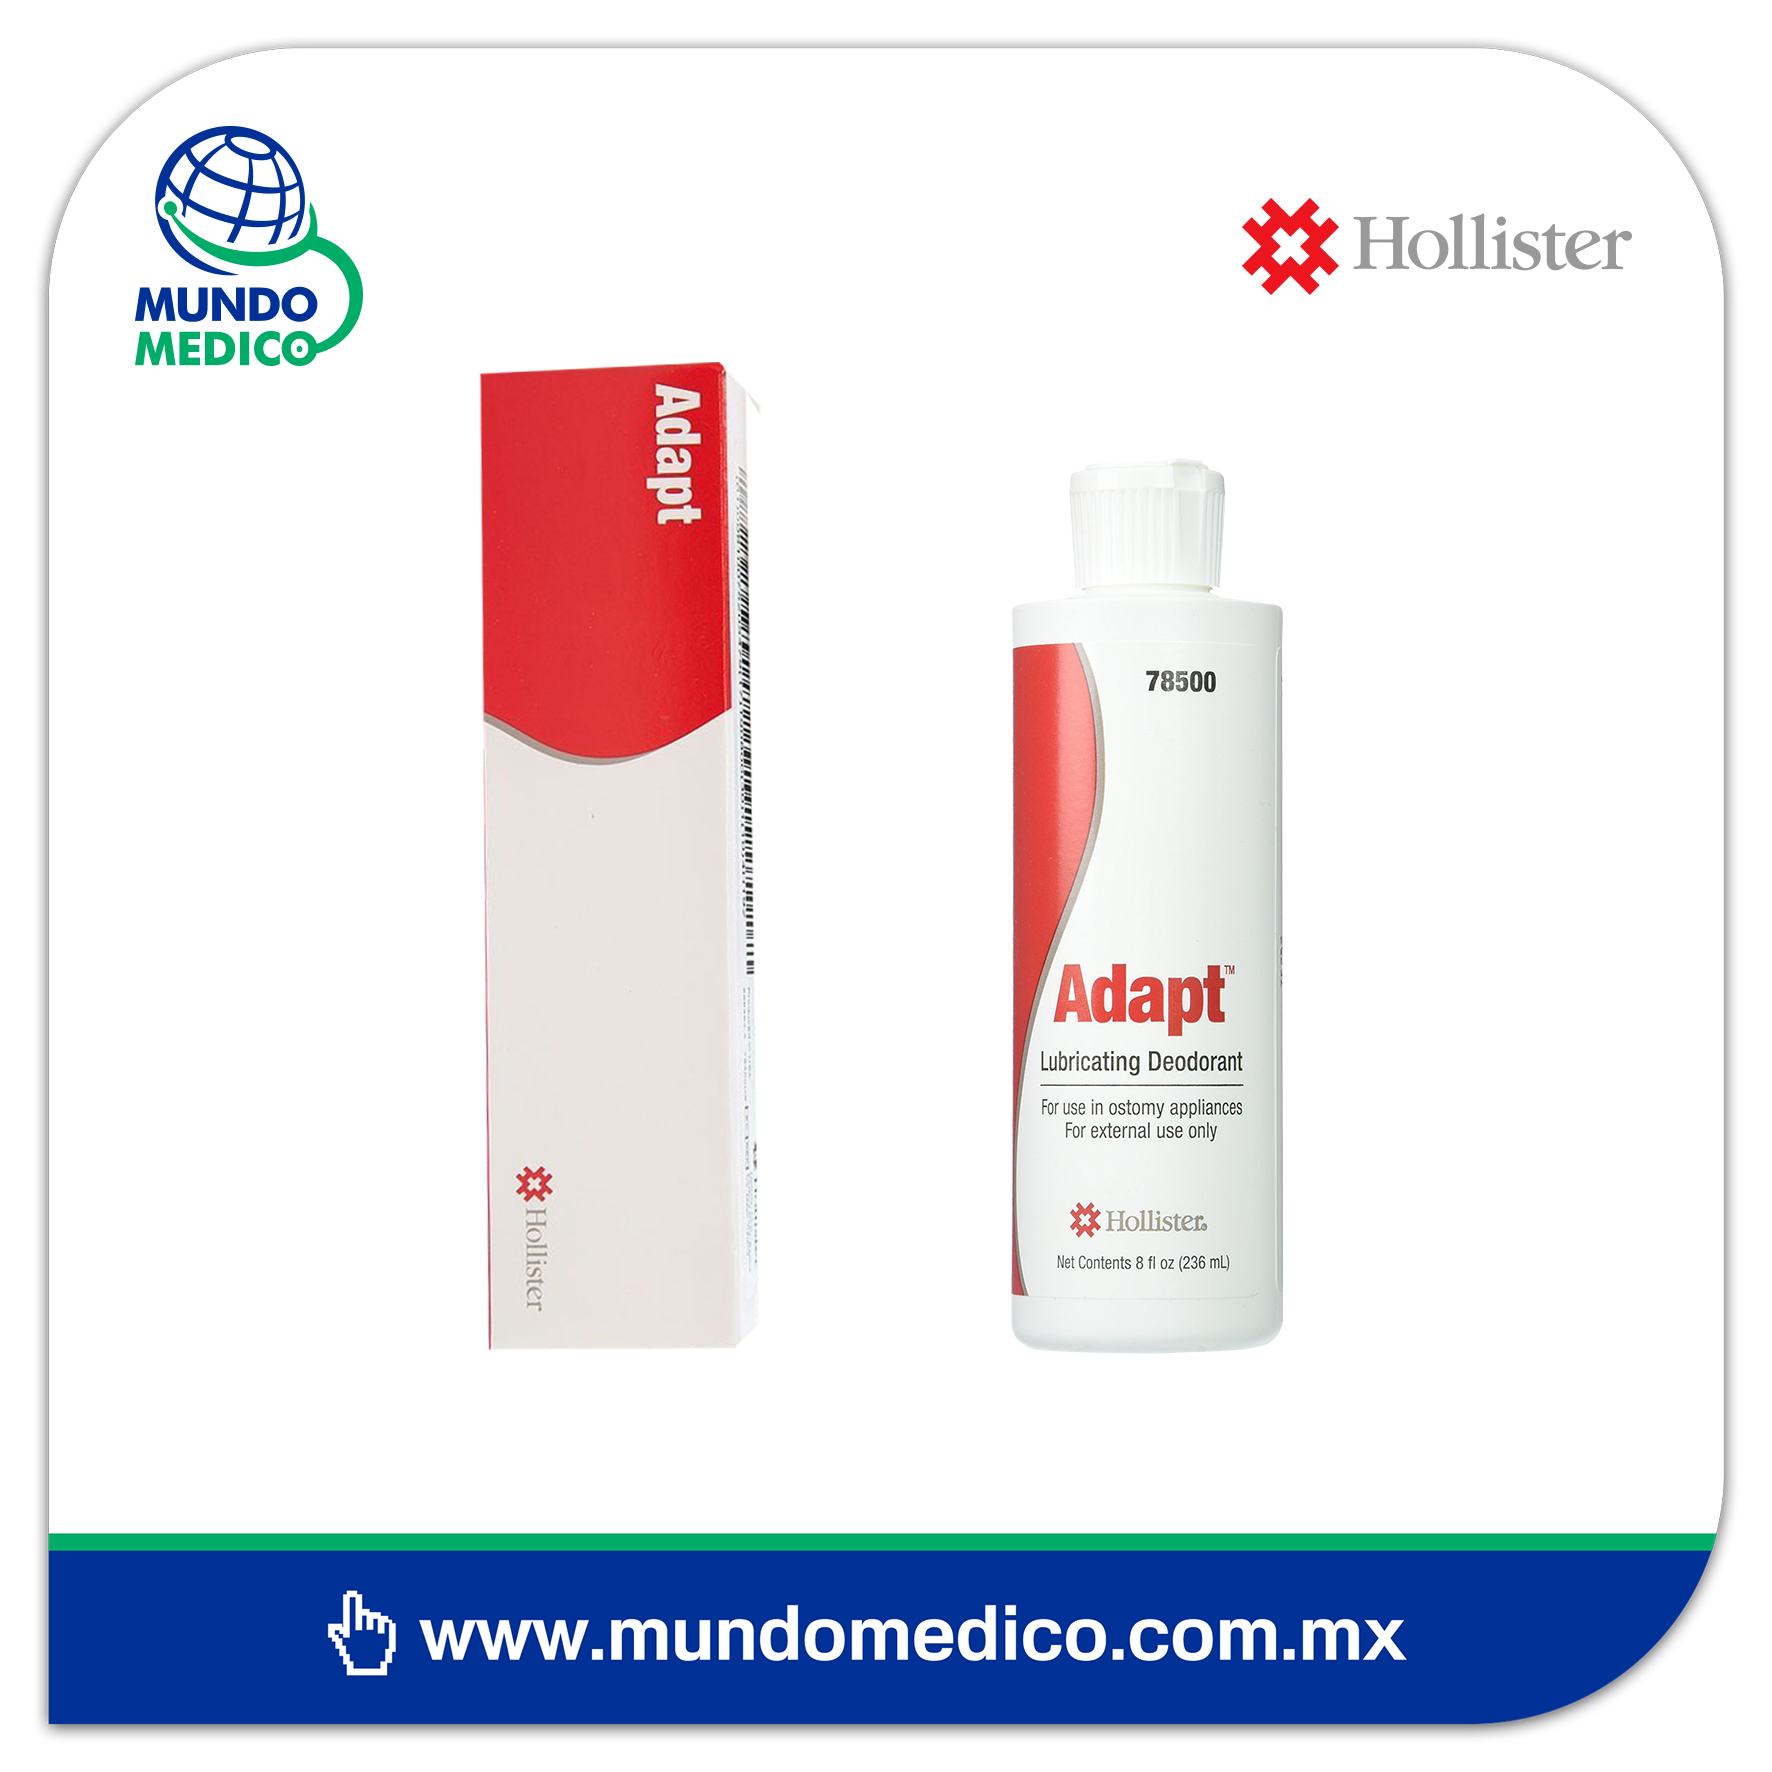 Adapt Hollister Lubricante y Desodorante en Frasco para Colostomía 78500 - 235 ml